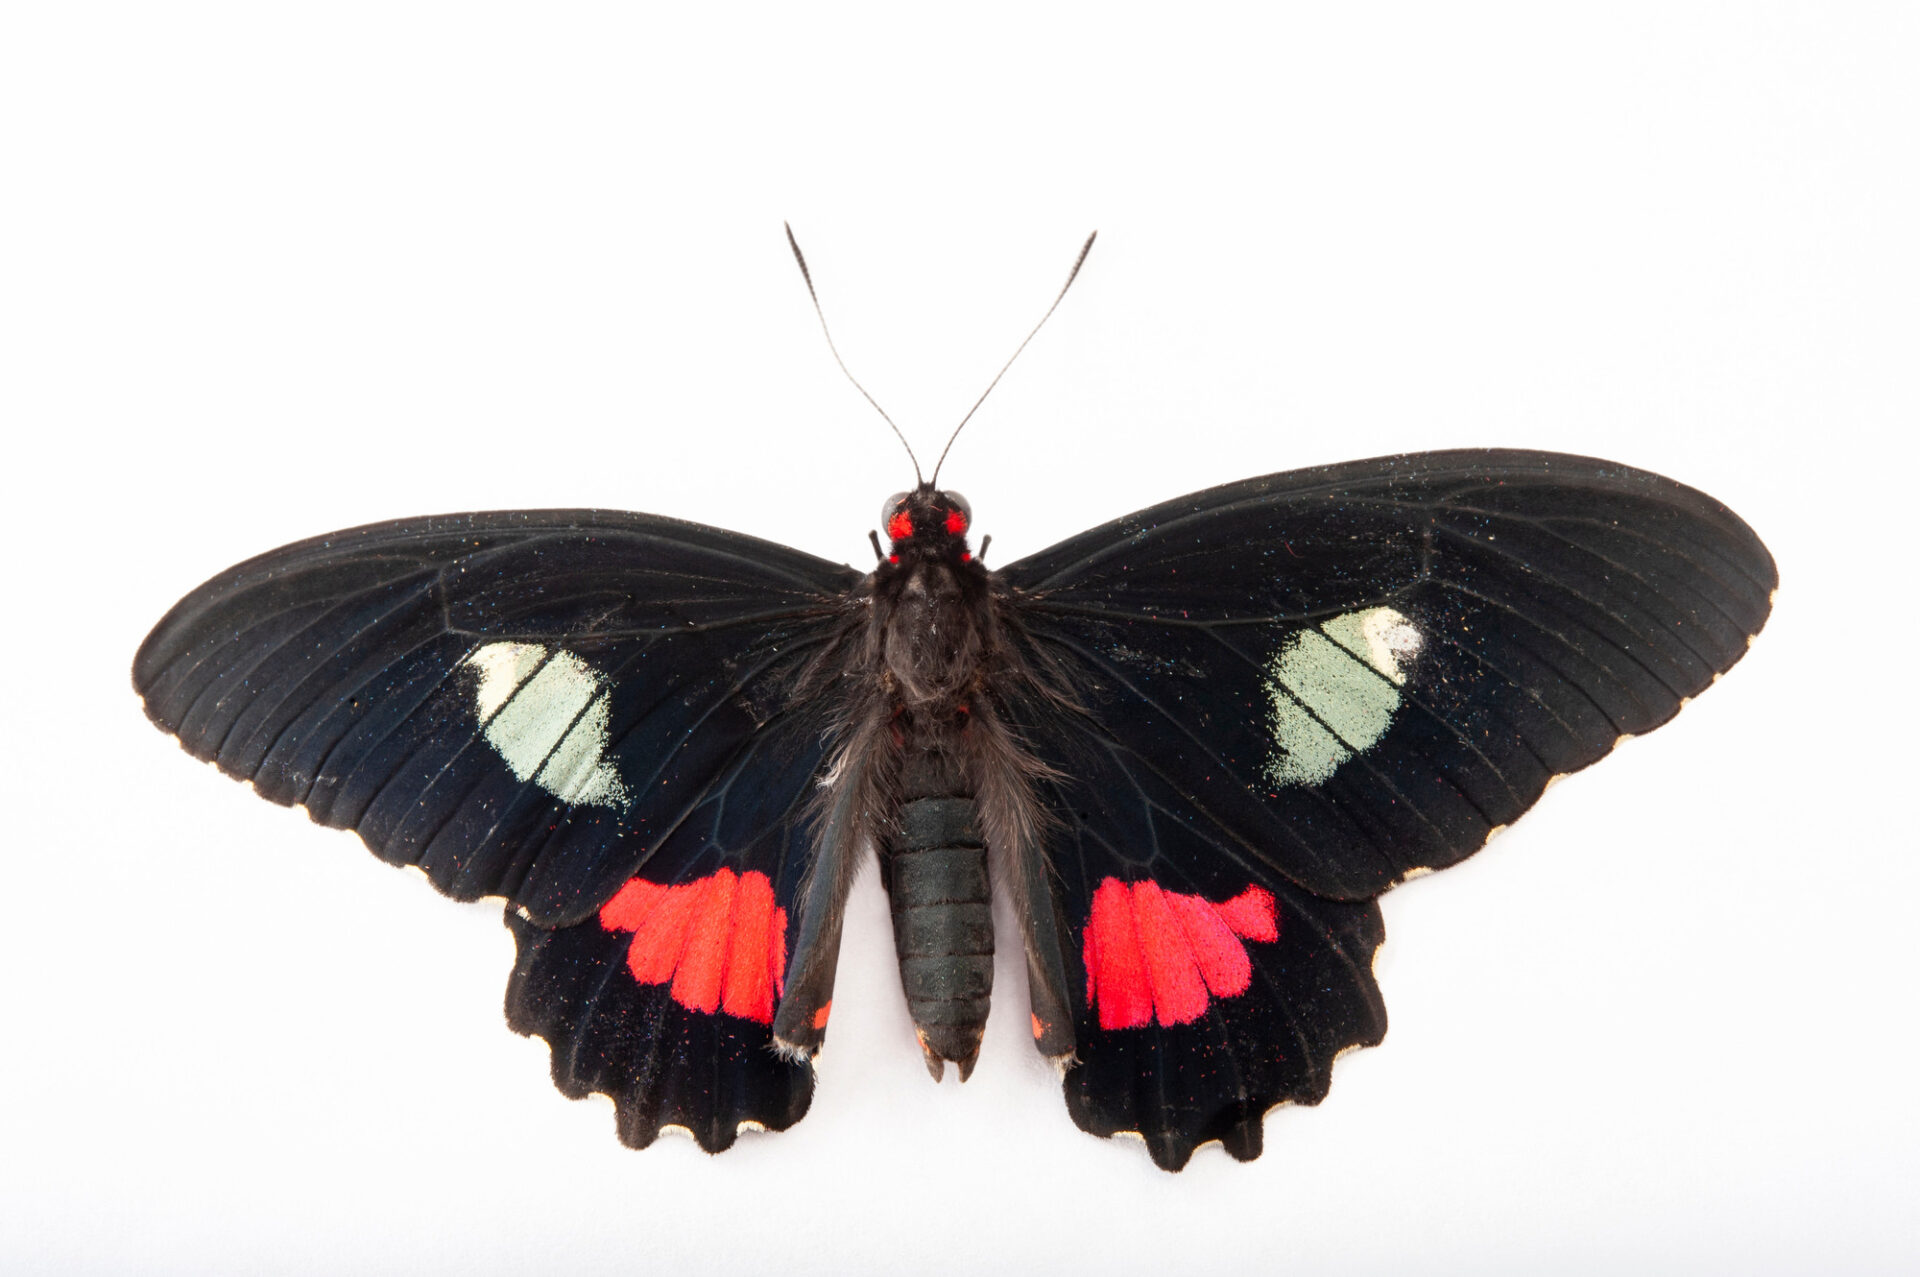 Photo: Cattleheart butterfly (Parides iphidamas) at the Insectarium in New Orleans.